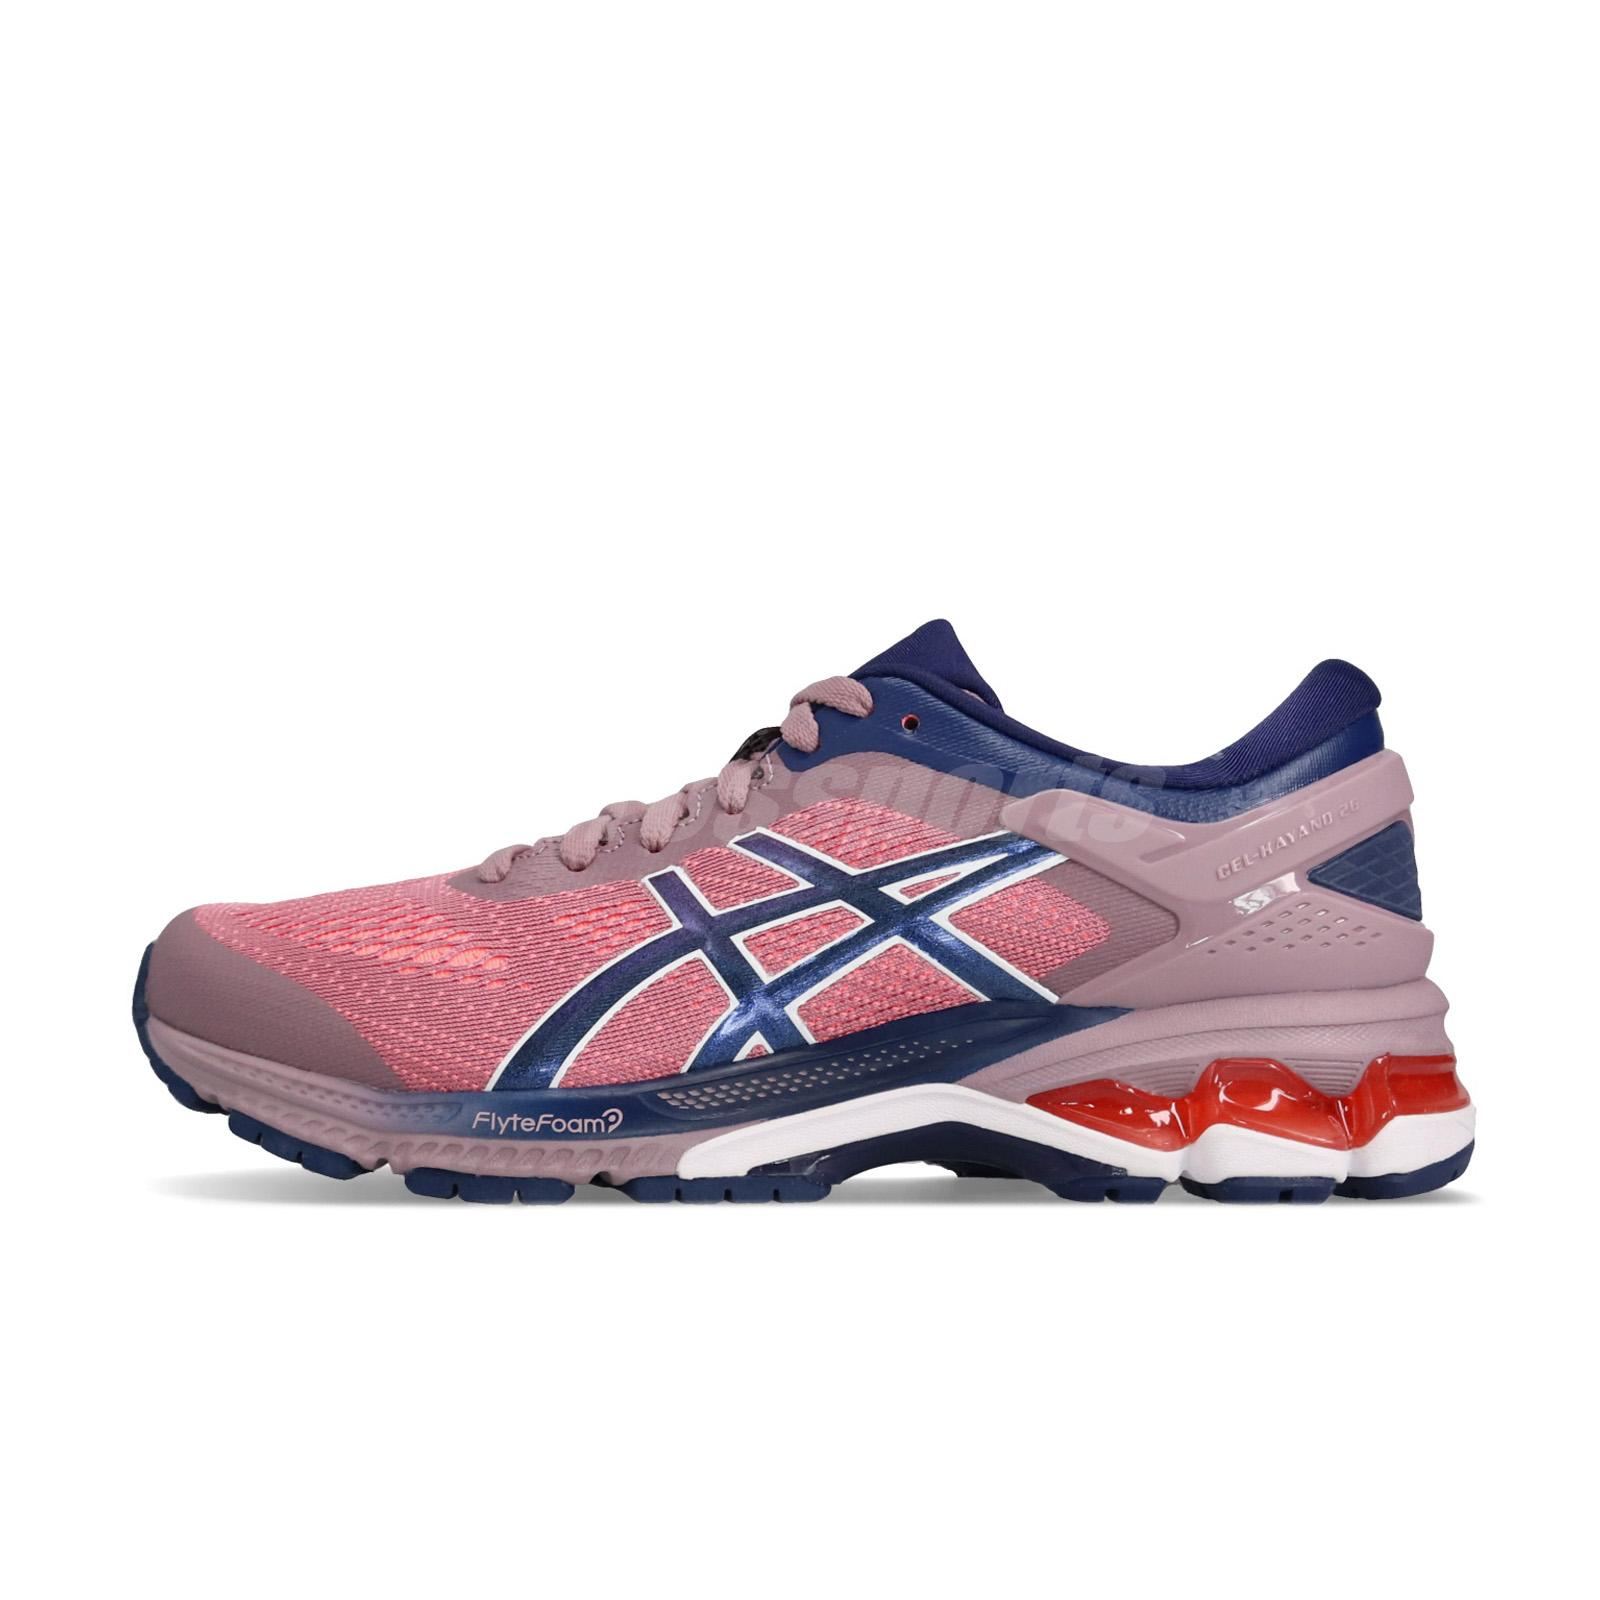 c7bcf2e0d8 Details about Asics Gel-Kayano 26 Pink Navy White Women Running Shoes  Sneakers 1012A457-500